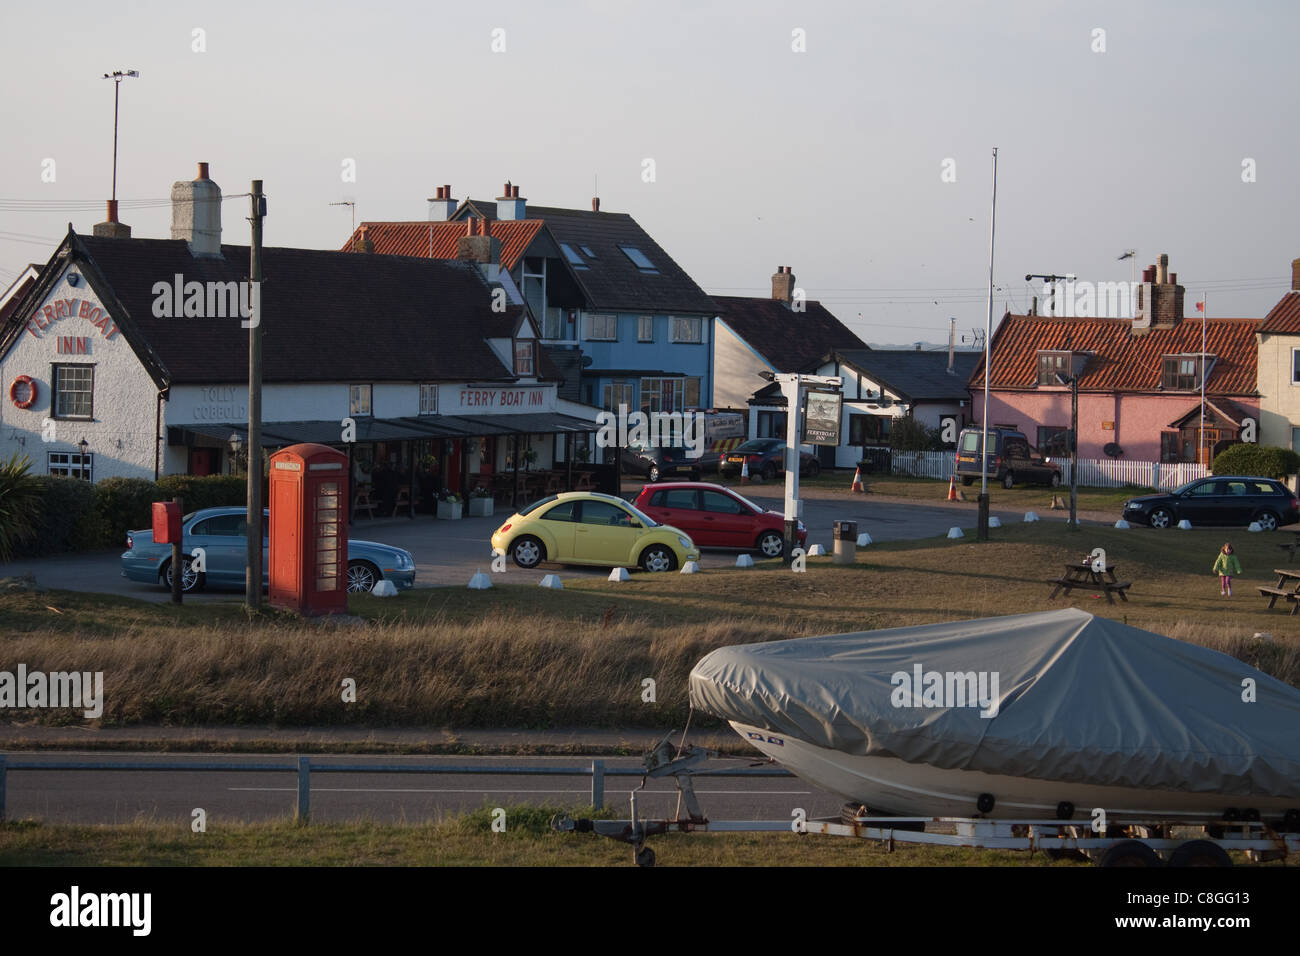 The Ferry Boat Inn at Felixstowe Ferry, Suffolk - Stock Image